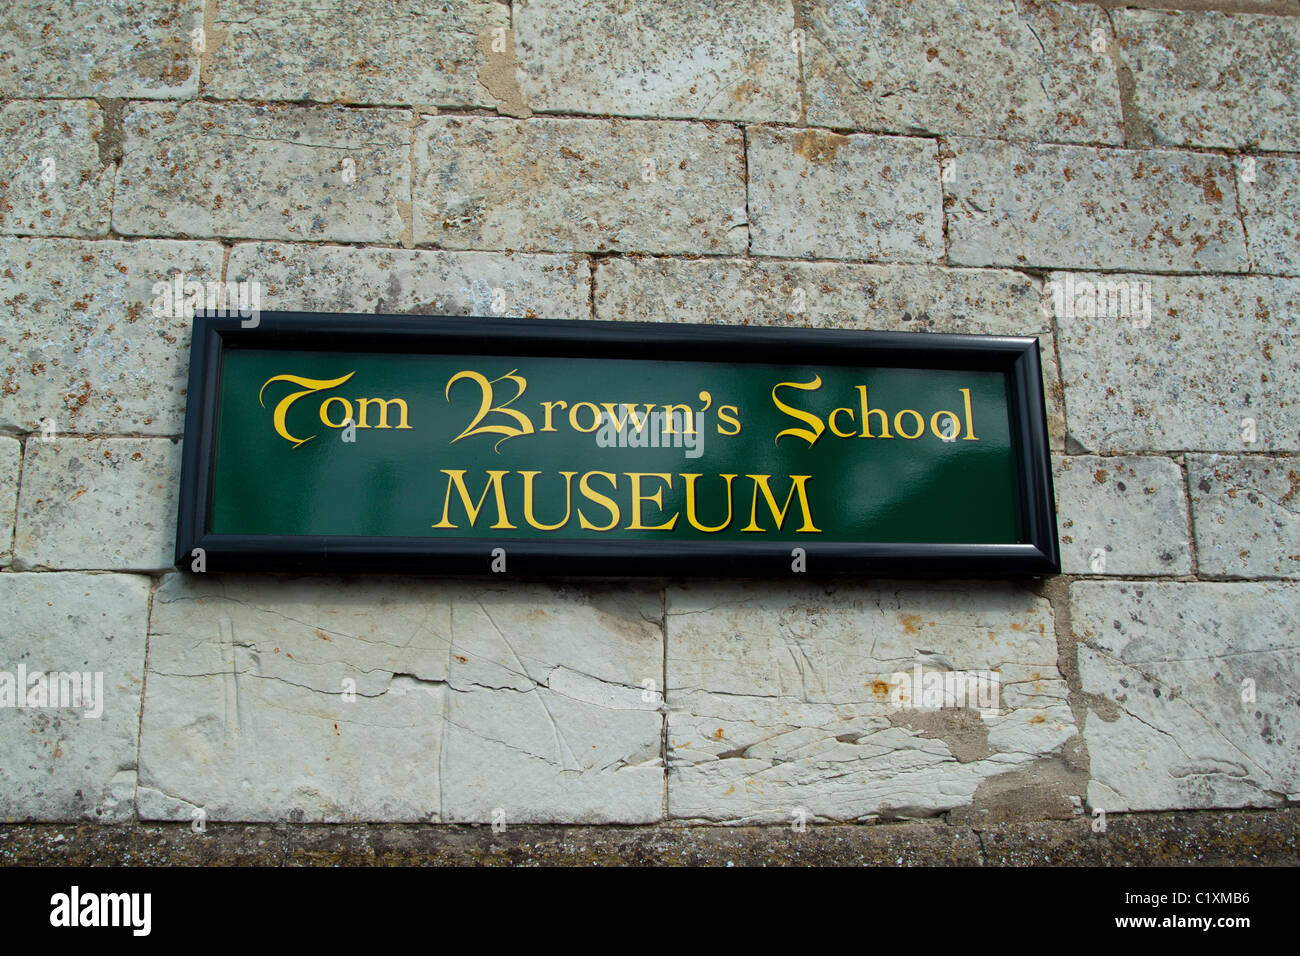 Tom Browns School Museum, Uffington, Oxon Stock Photo